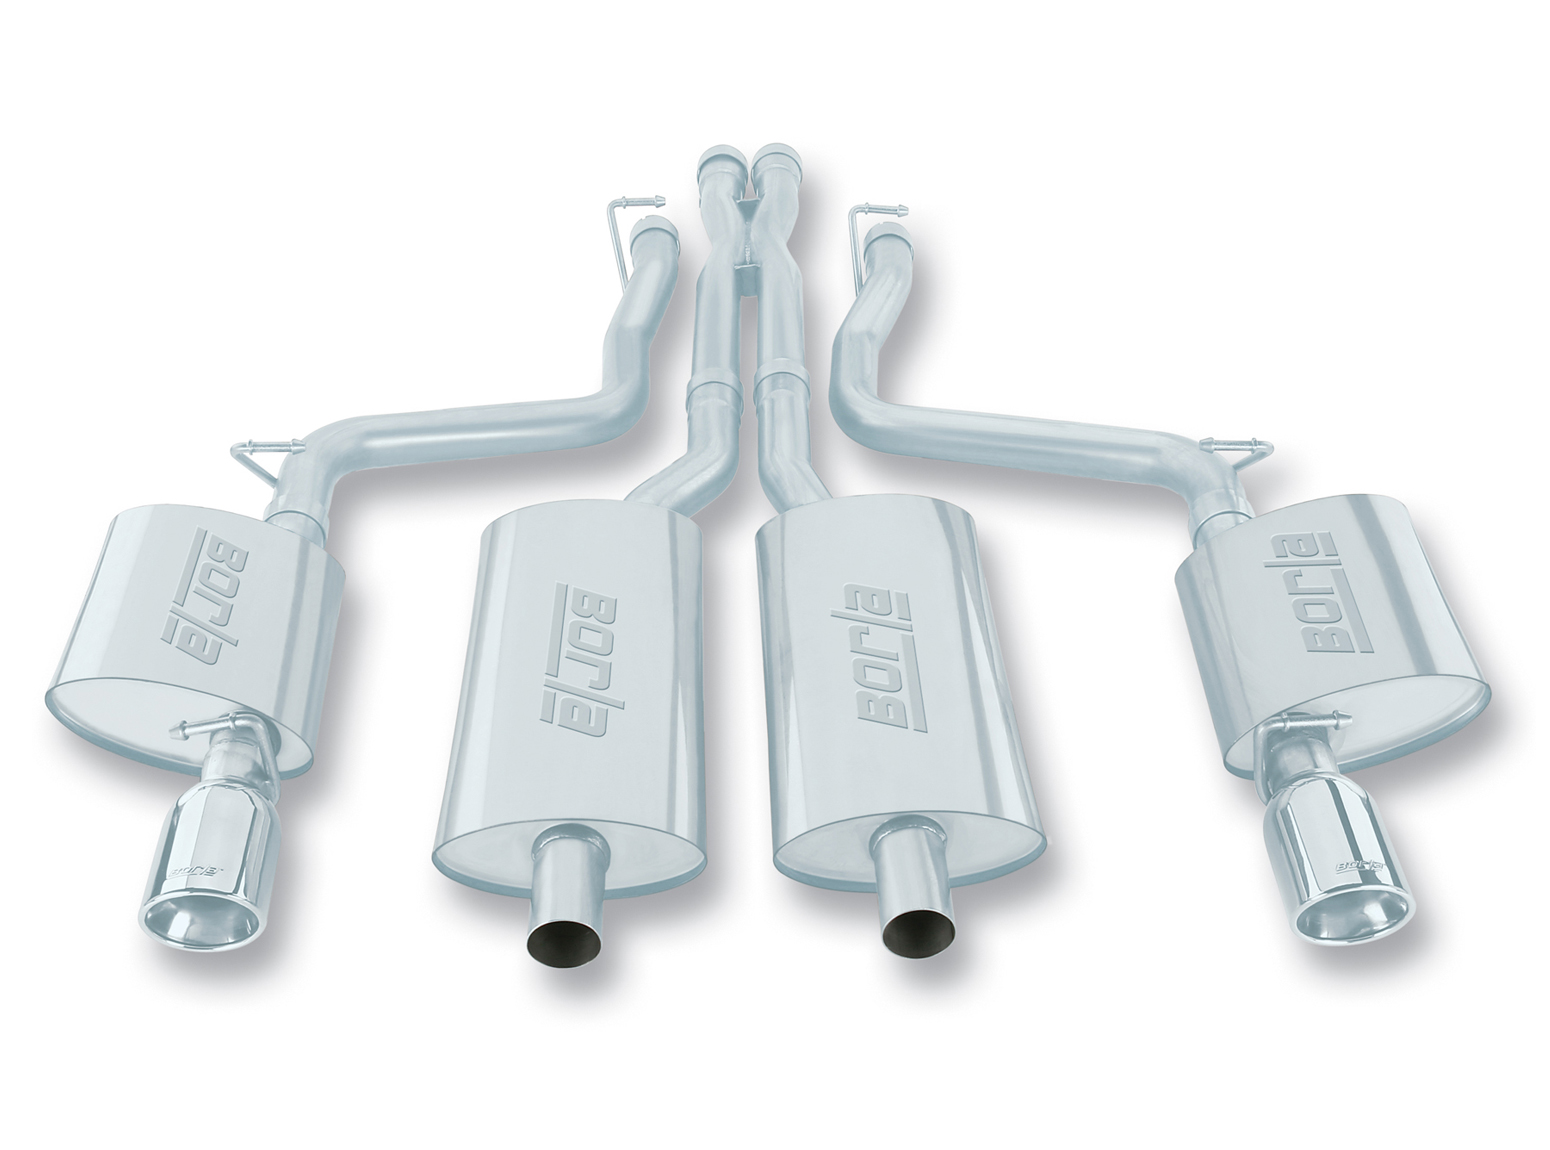 Dodge Magnum SRT-8 6.1l V8 2005-2008 Borla 2.5&#34; Cat-Back Exhaust System - Single Round Rolled Angle-Cut Lined